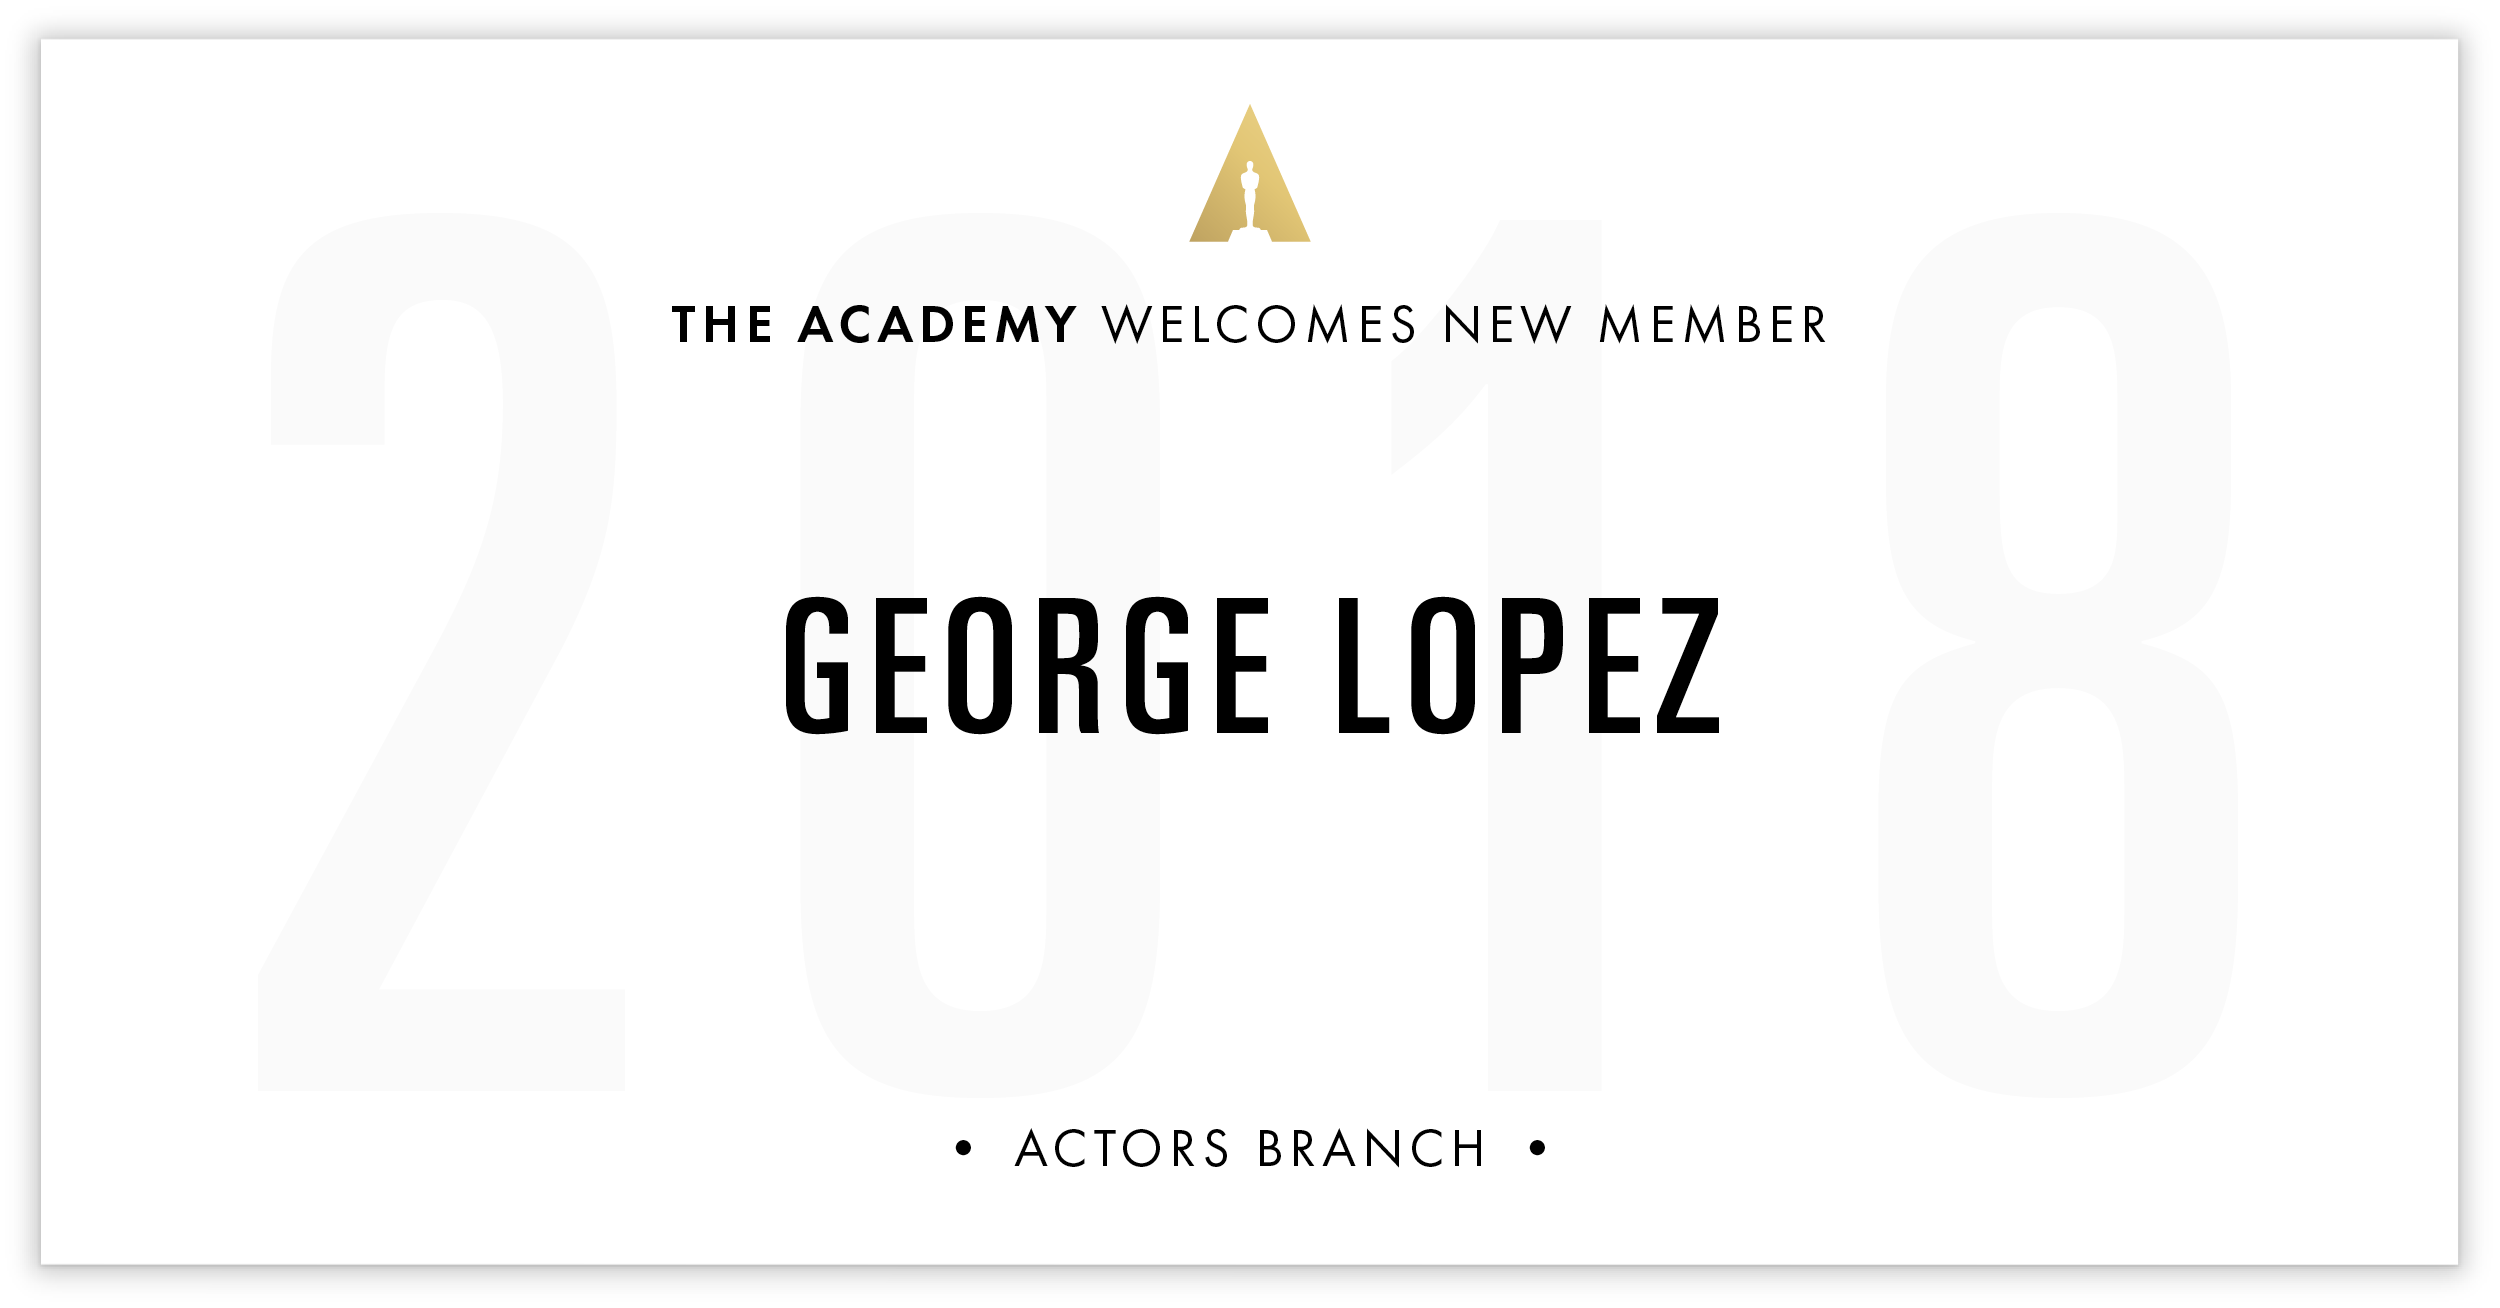 George Lopez is invited!